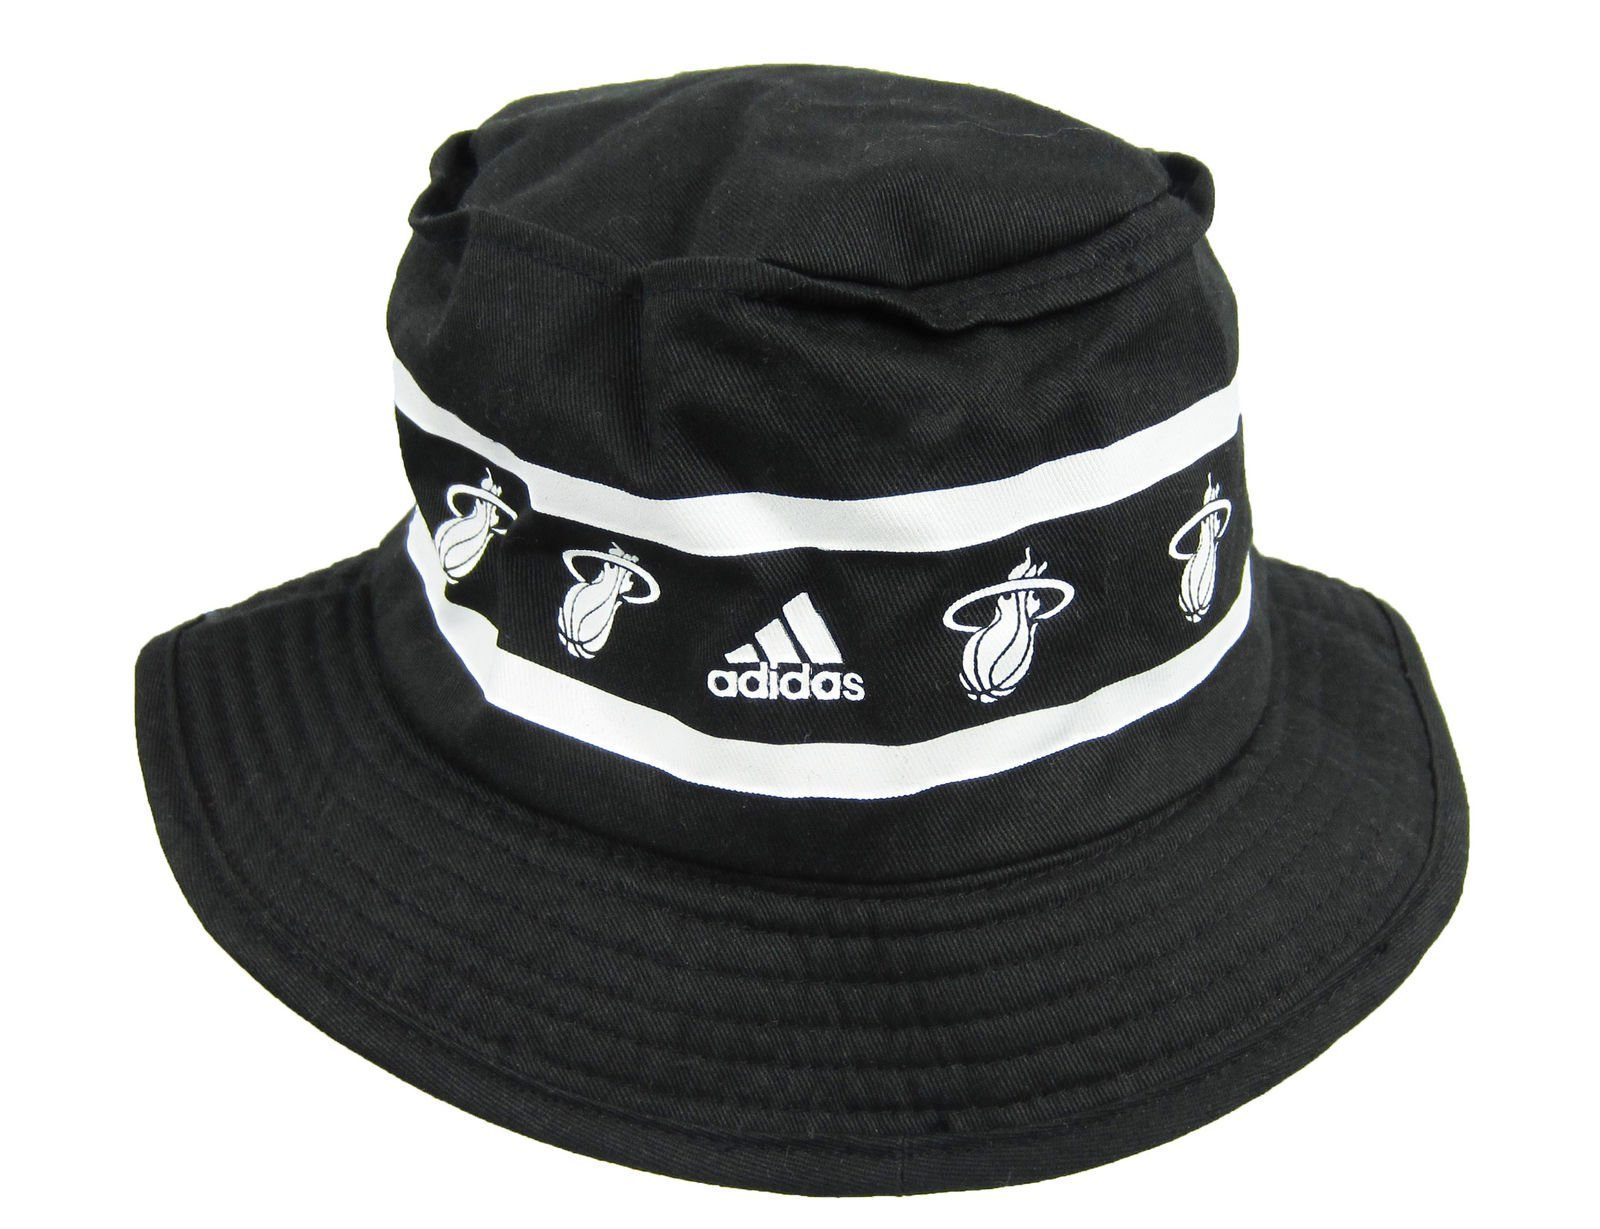 fc9e57fcf46 Adidas NBA Miami Heat Size Small Bucket Hat Black And White. Product Details